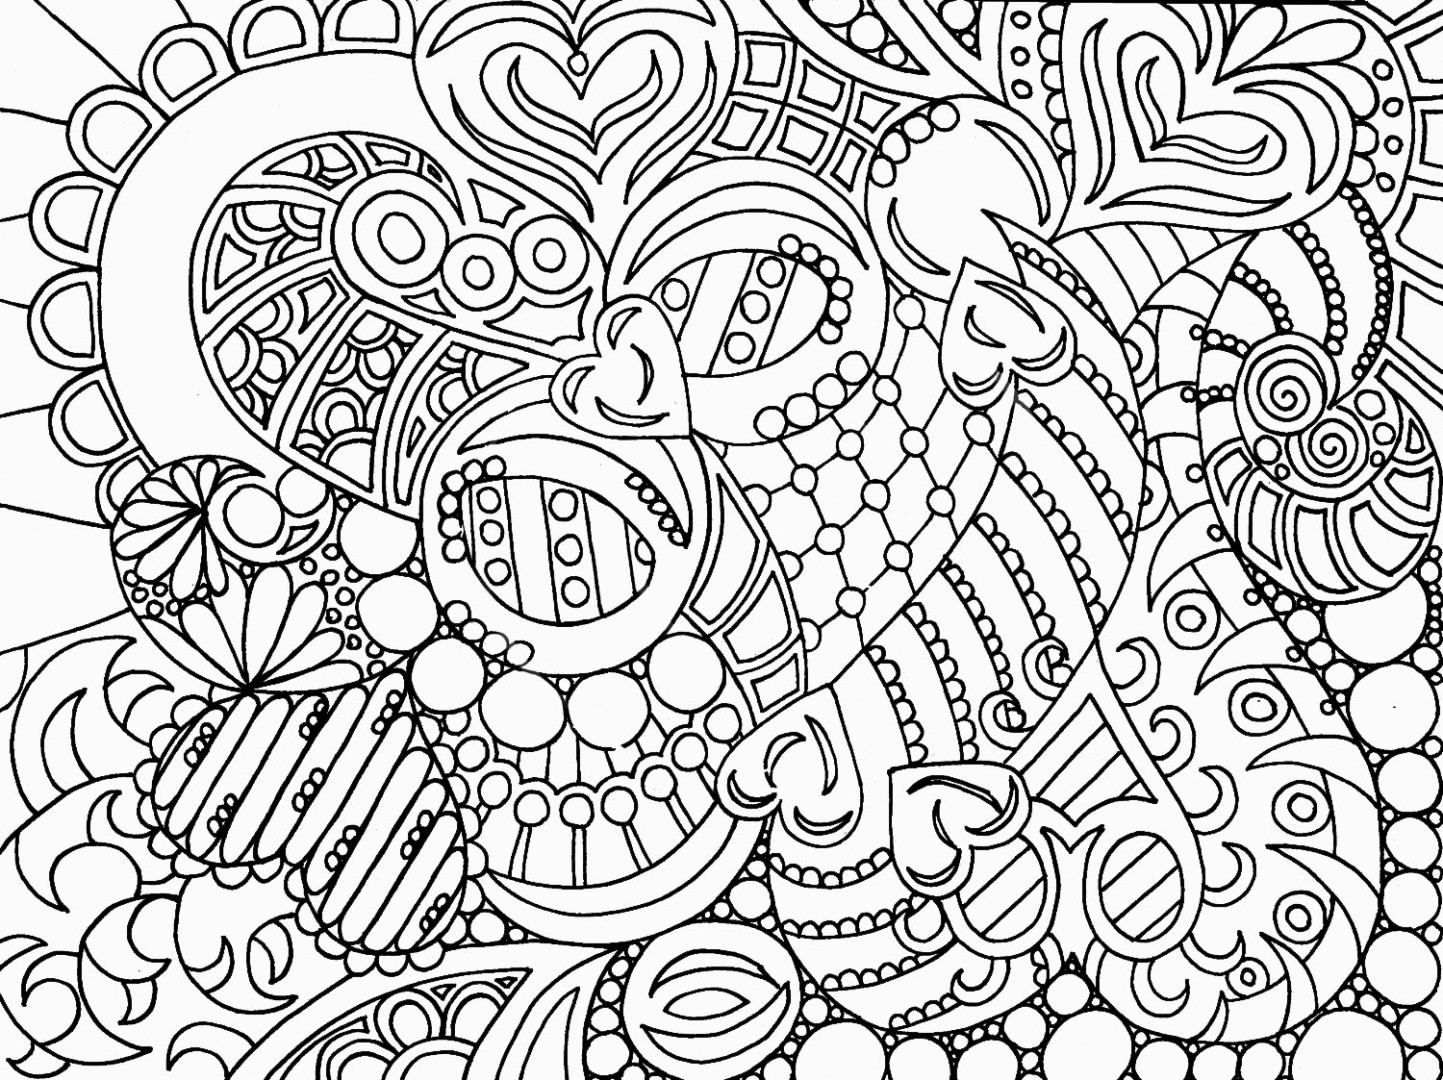 1443x1080 Coloring Pages For Girls Abstract Boho Just Colorings